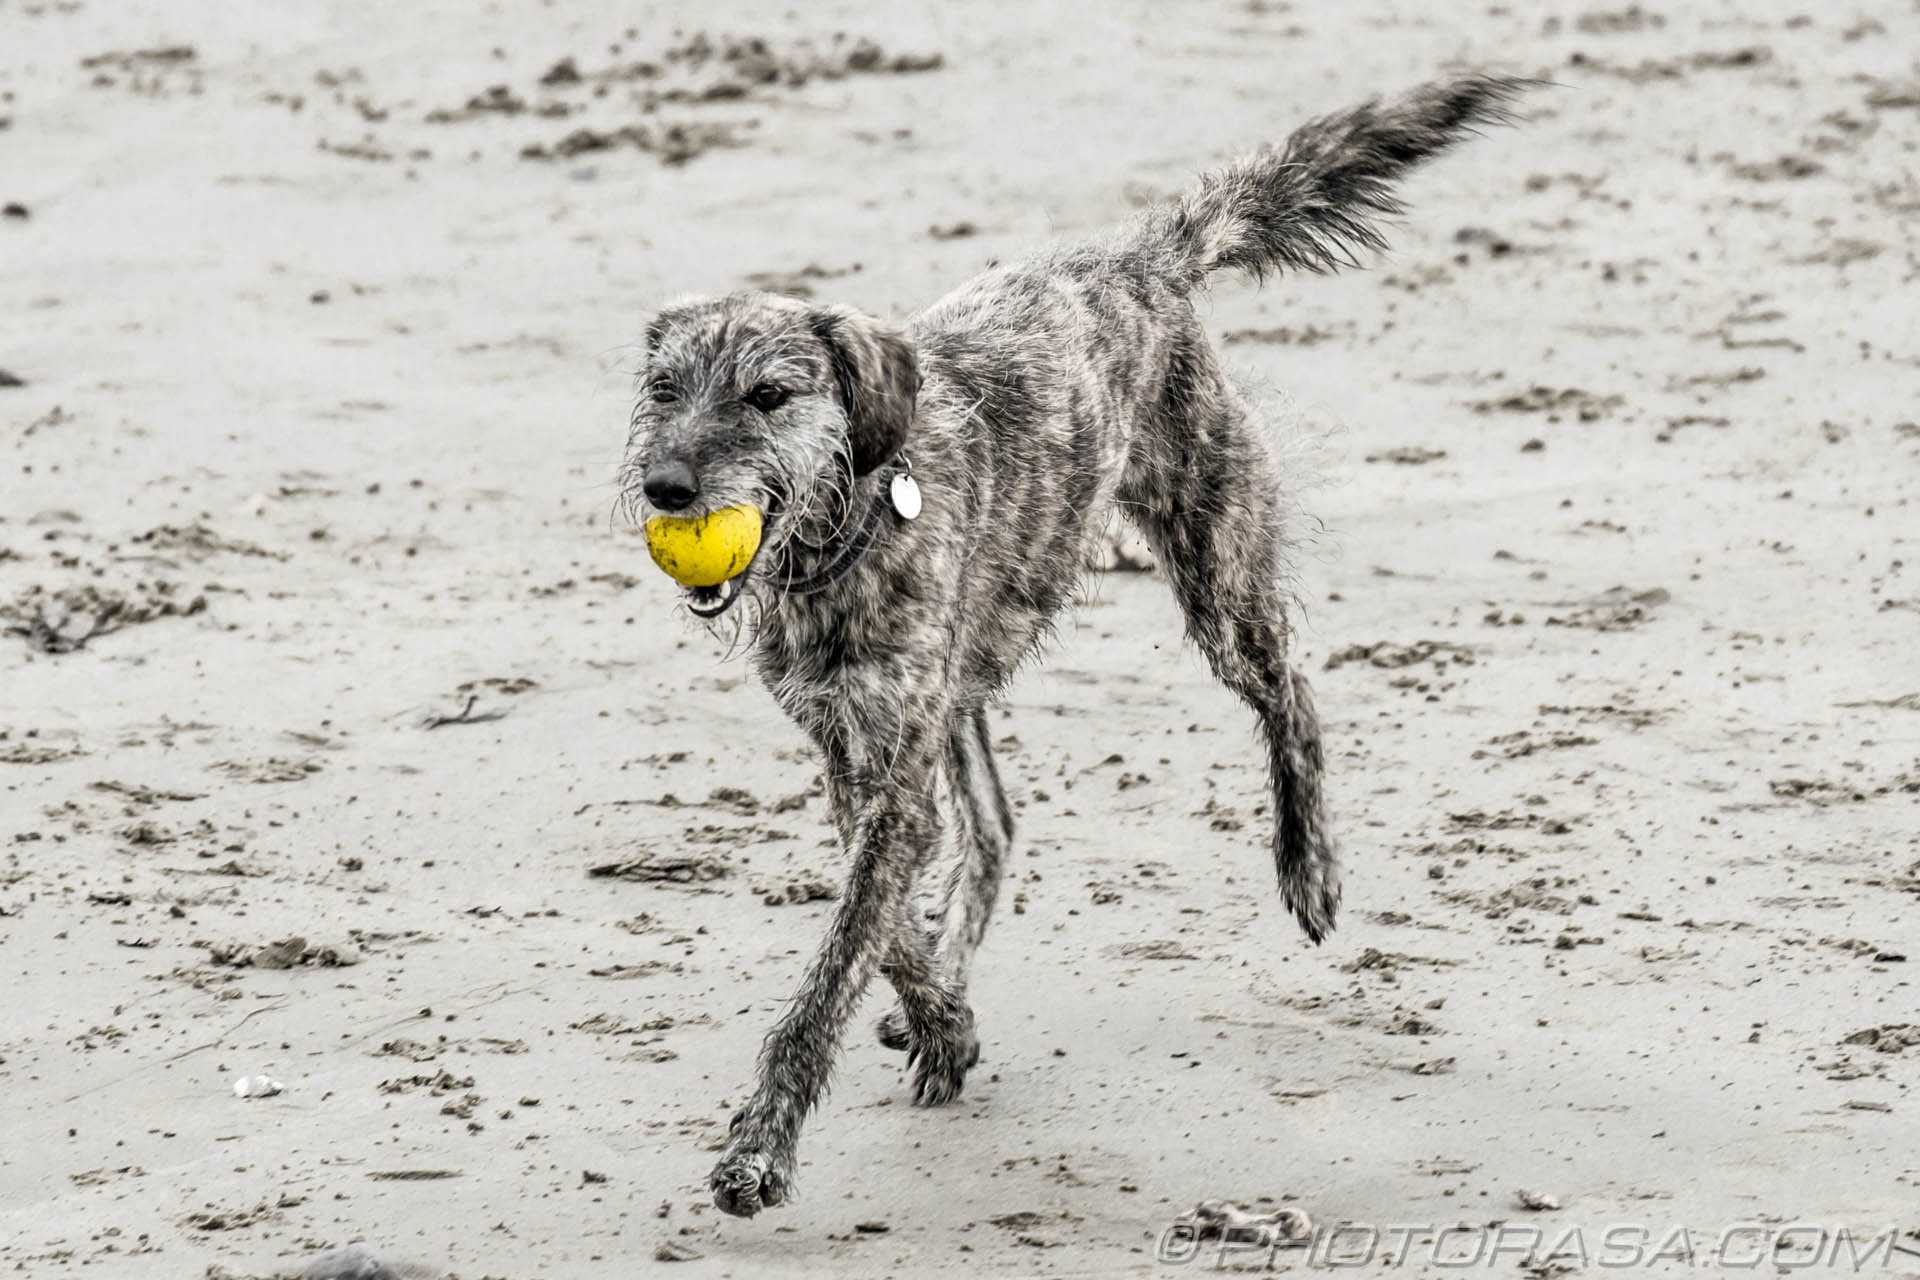 https://photorasa.com/dog-sand/running-on-sand-with-yellow-ball-in-mouth/